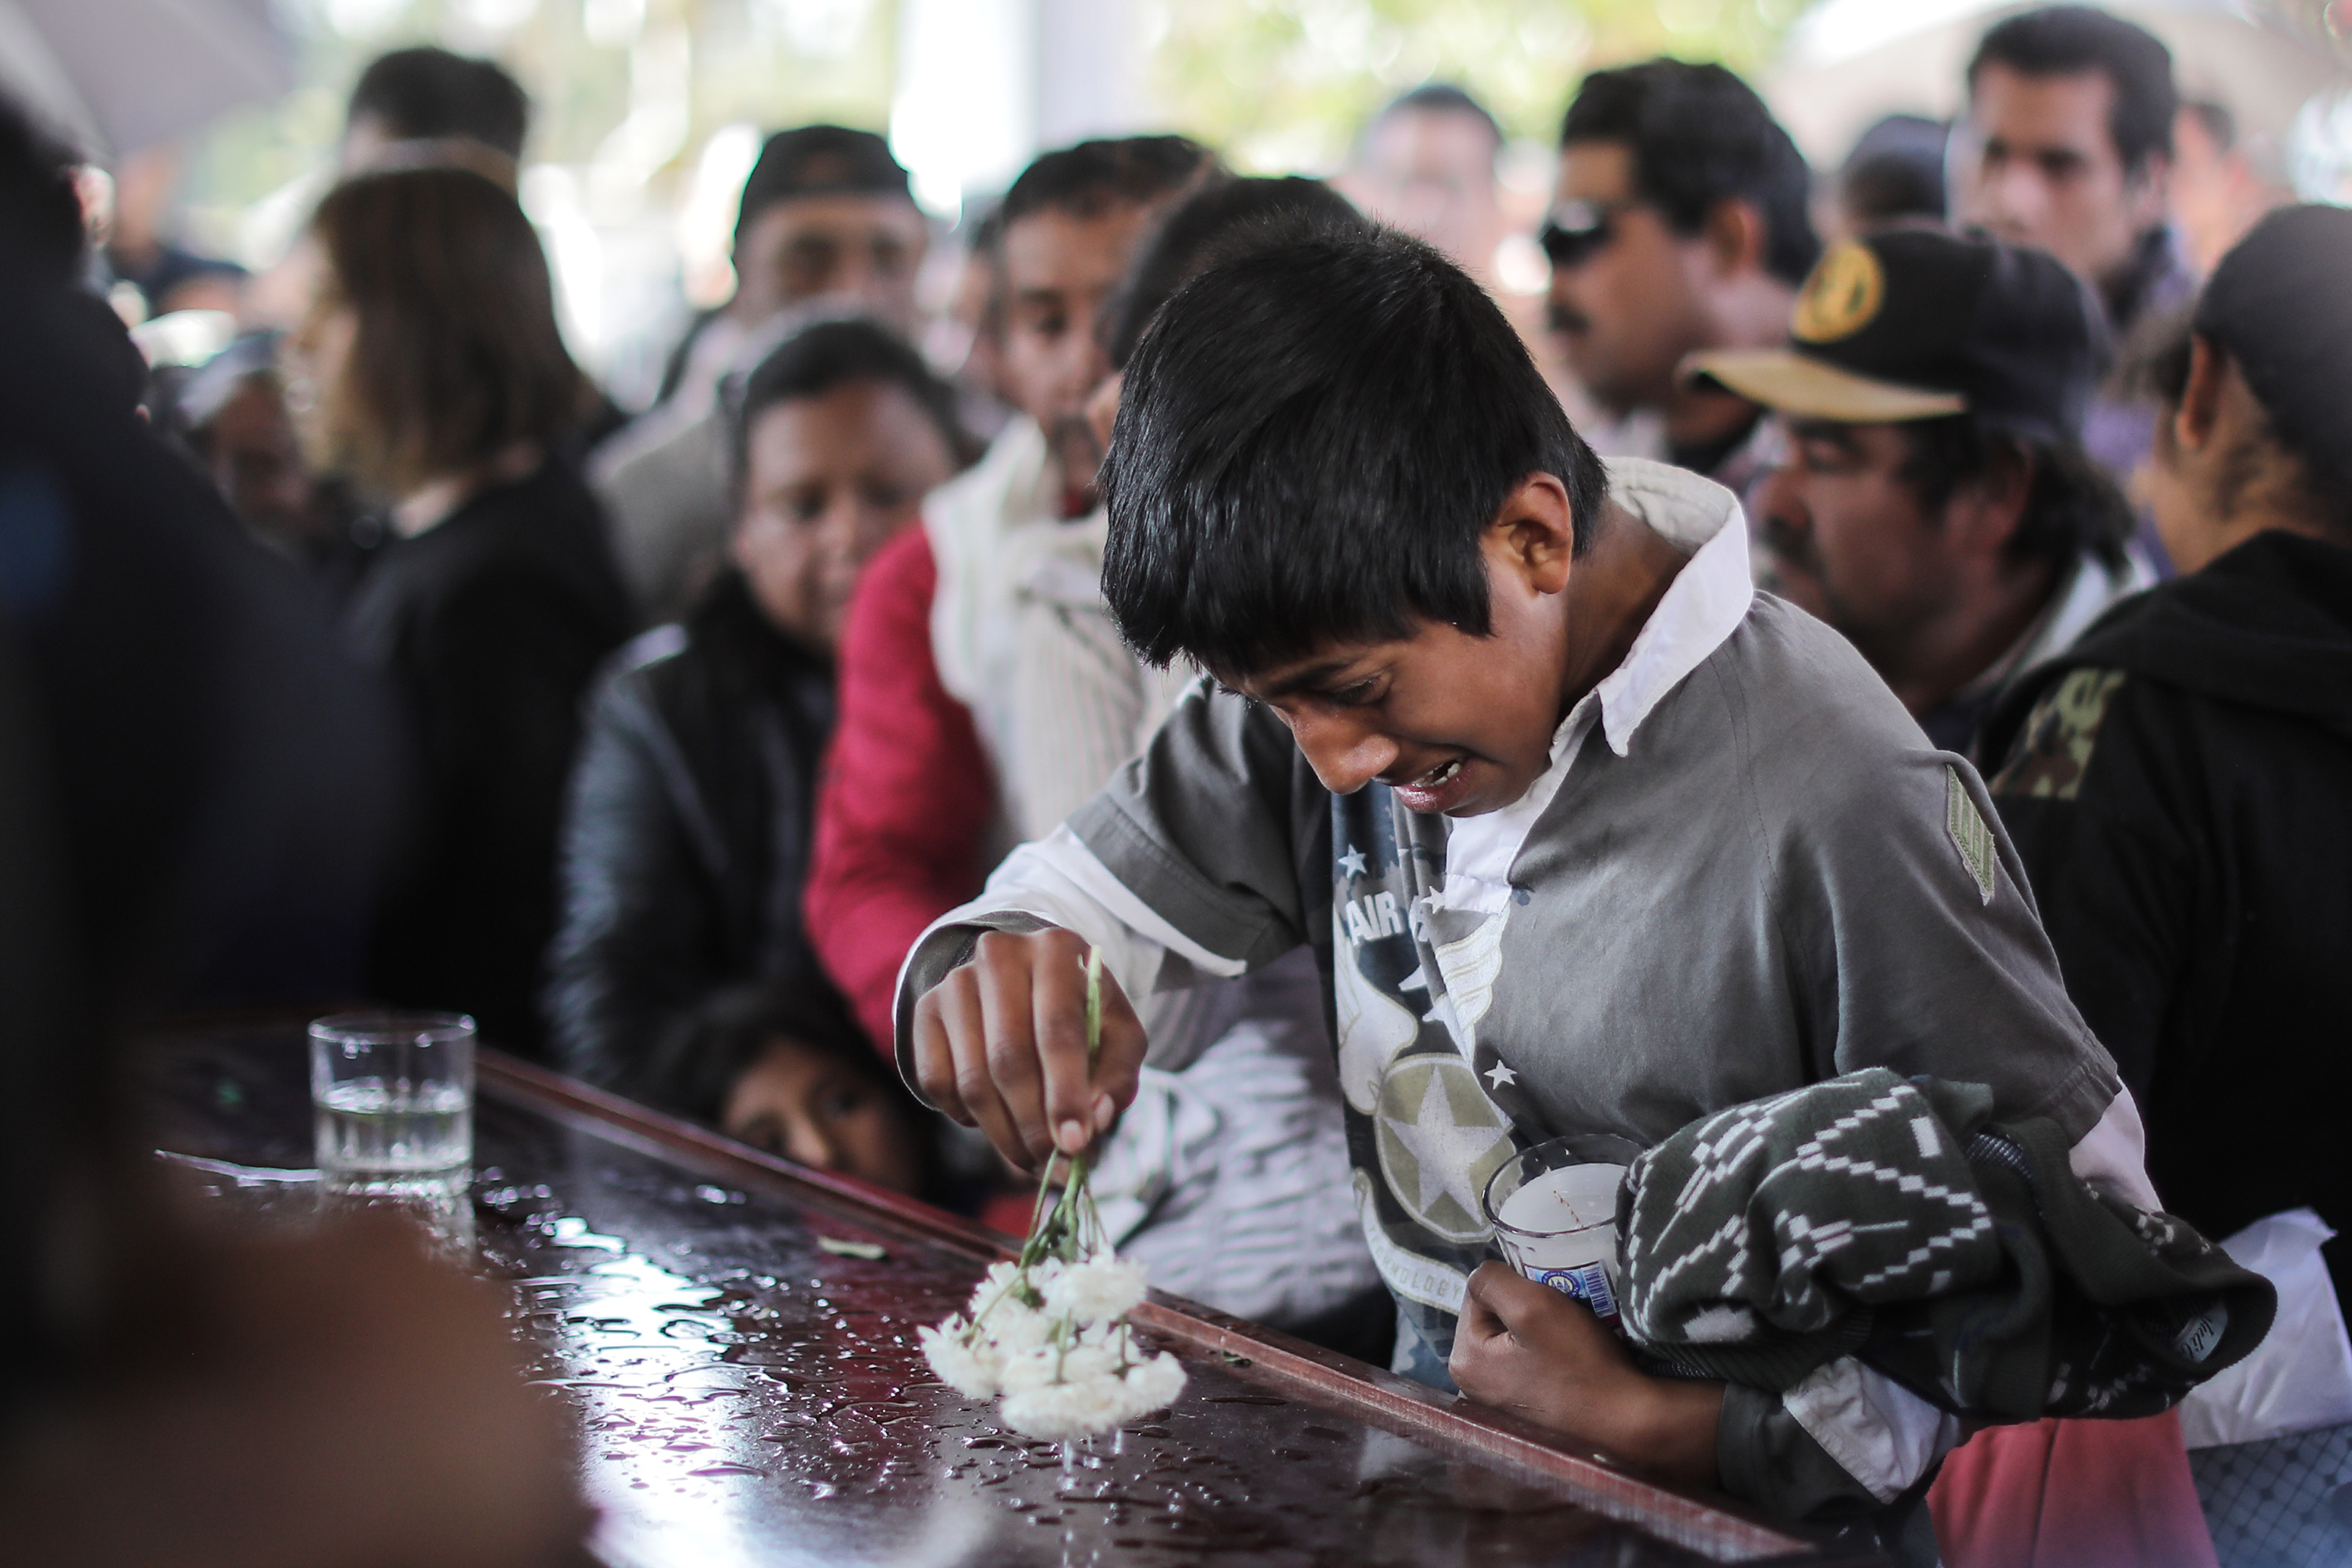 TLAHUELILPAN, MEXICO - JANUARY 20: Relatives and friends of a deceased cry before the burial in the pantheon after the funeral services of the victims of an explosion in a pipeline belonging to Mexican Public Oil Company Pemex on January 20, 2019 in Tlahuelilpan, Mexico. In a statement, PEMEX announced that the explosion was caused by the illegal manipulation of the pipeline, as minutes before the accident videos were shot where people could be seen filling drums and car fuel tanks. (Photo by Hector Vivas/Getty Images)